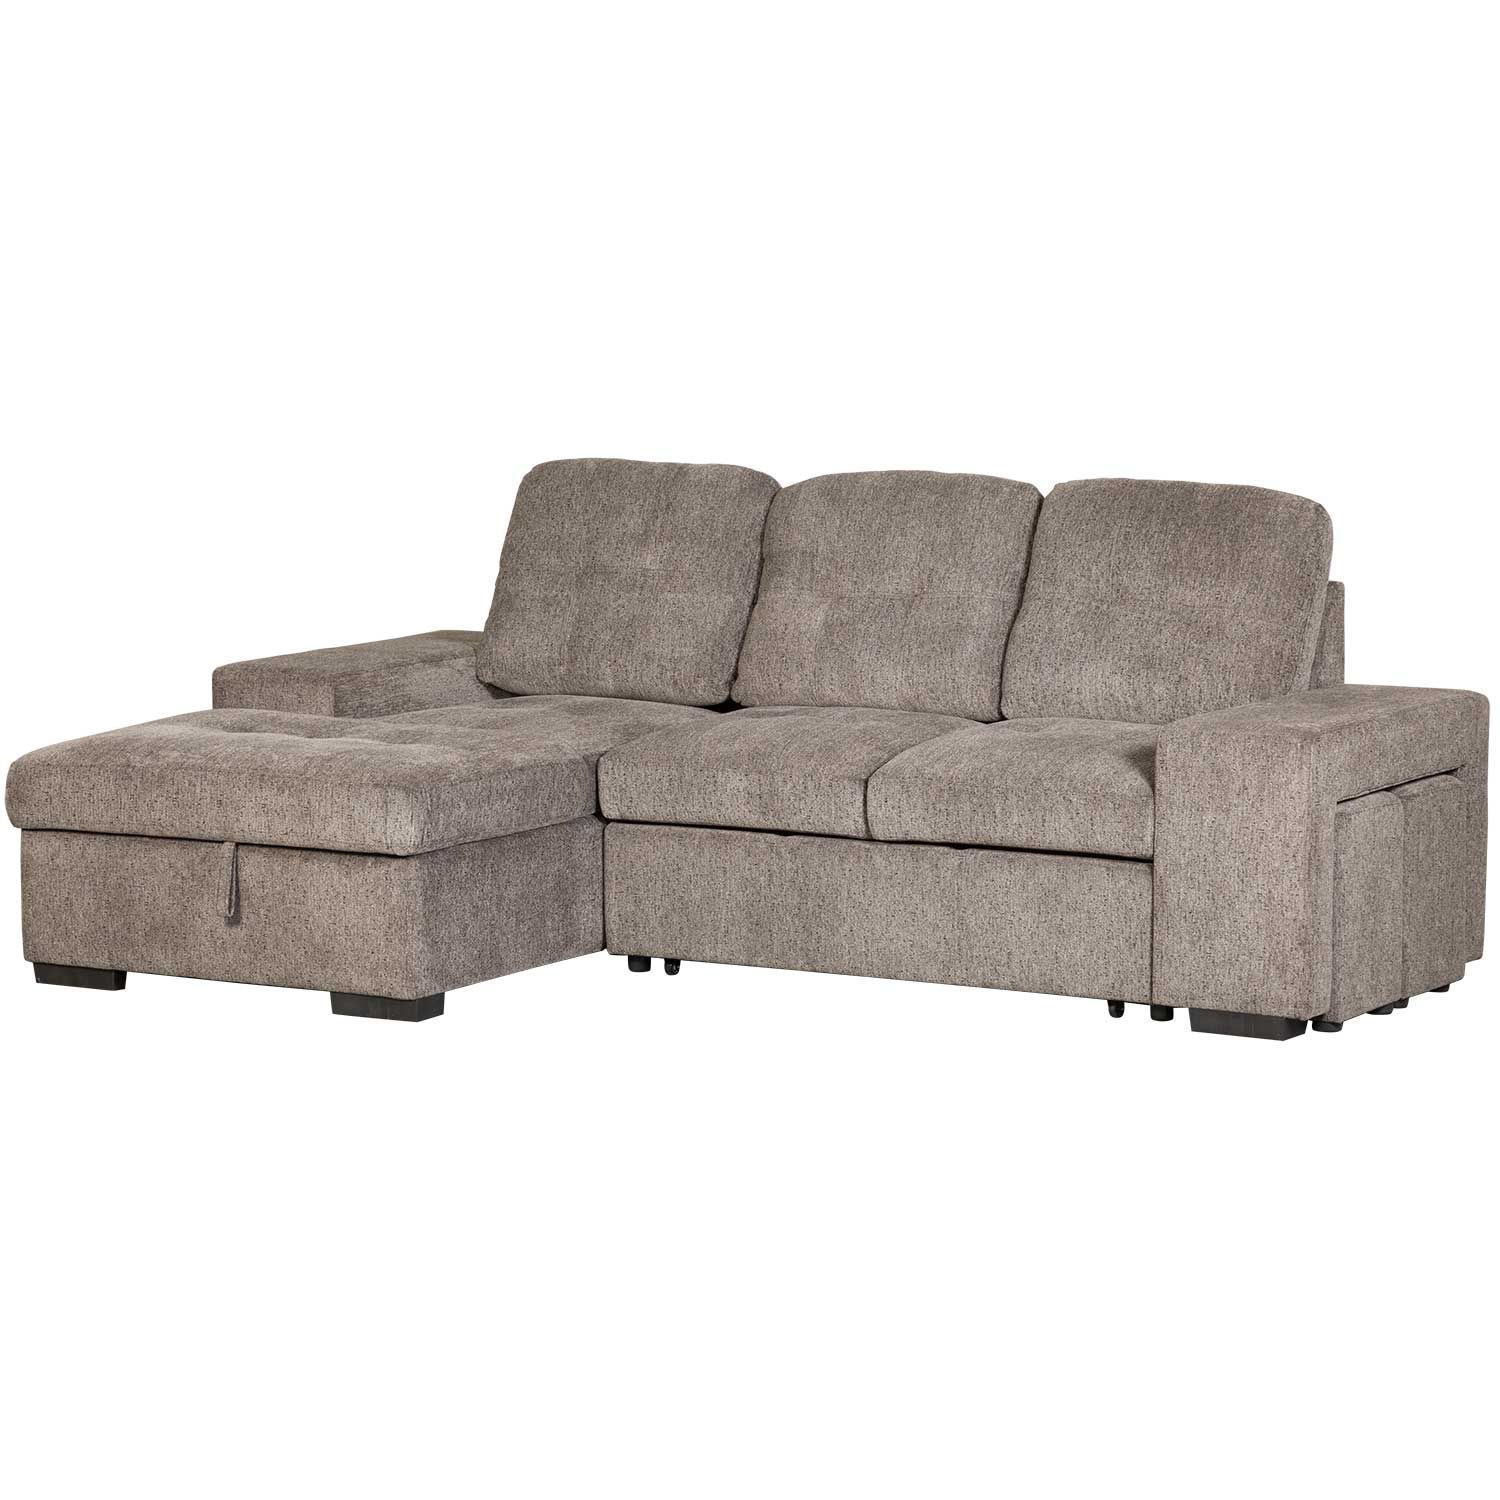 Picture of Reagan 2 Piece Sectional with Pull Out Bed